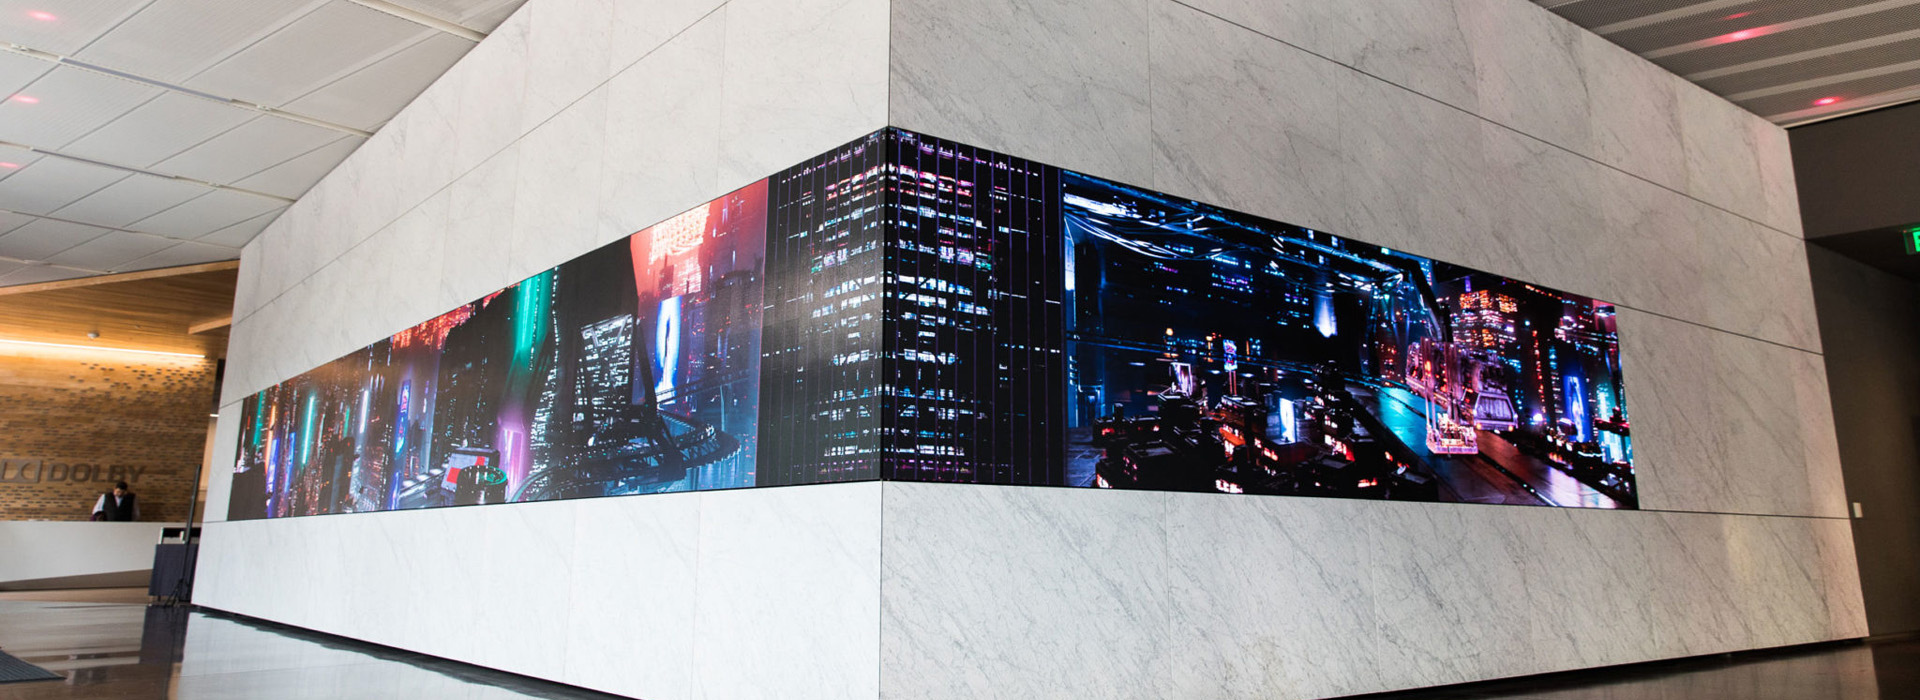 dolby_wall_lead